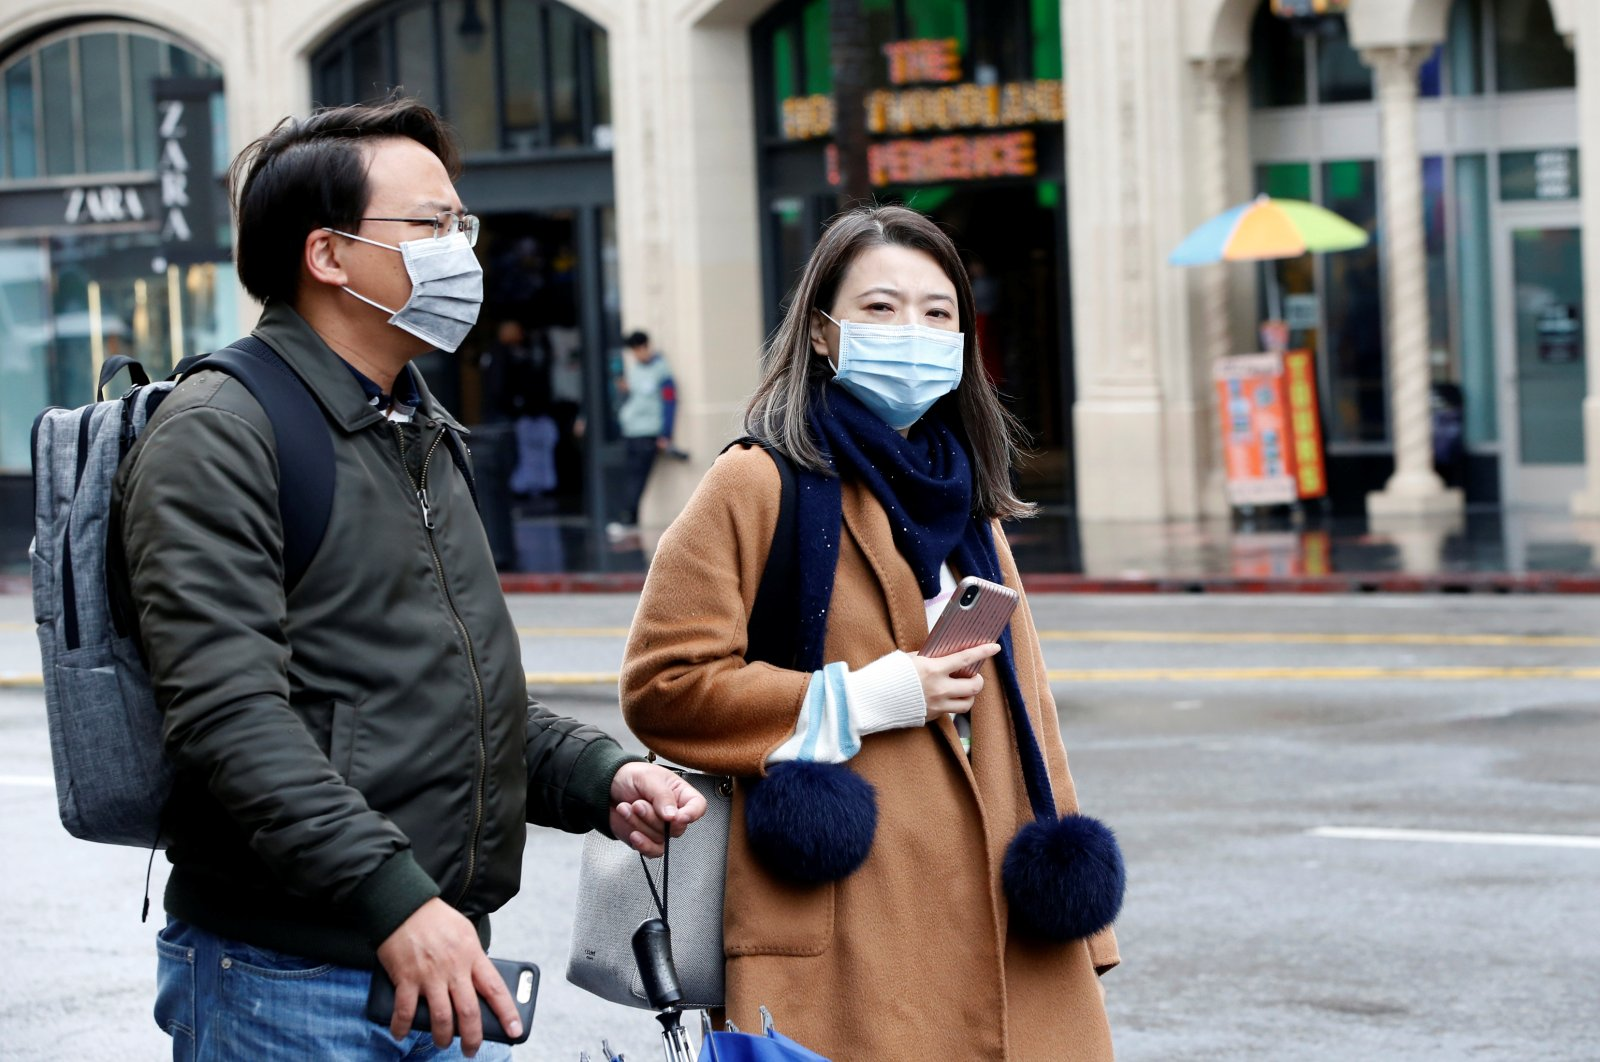 People wearing face masks visit the forecourt of the TCL Chinese Theatre during the global outbreak of coronavirus (COVID-19) in Los Angeles, California, U.S., March 14, 2020. (Reuters Photo)